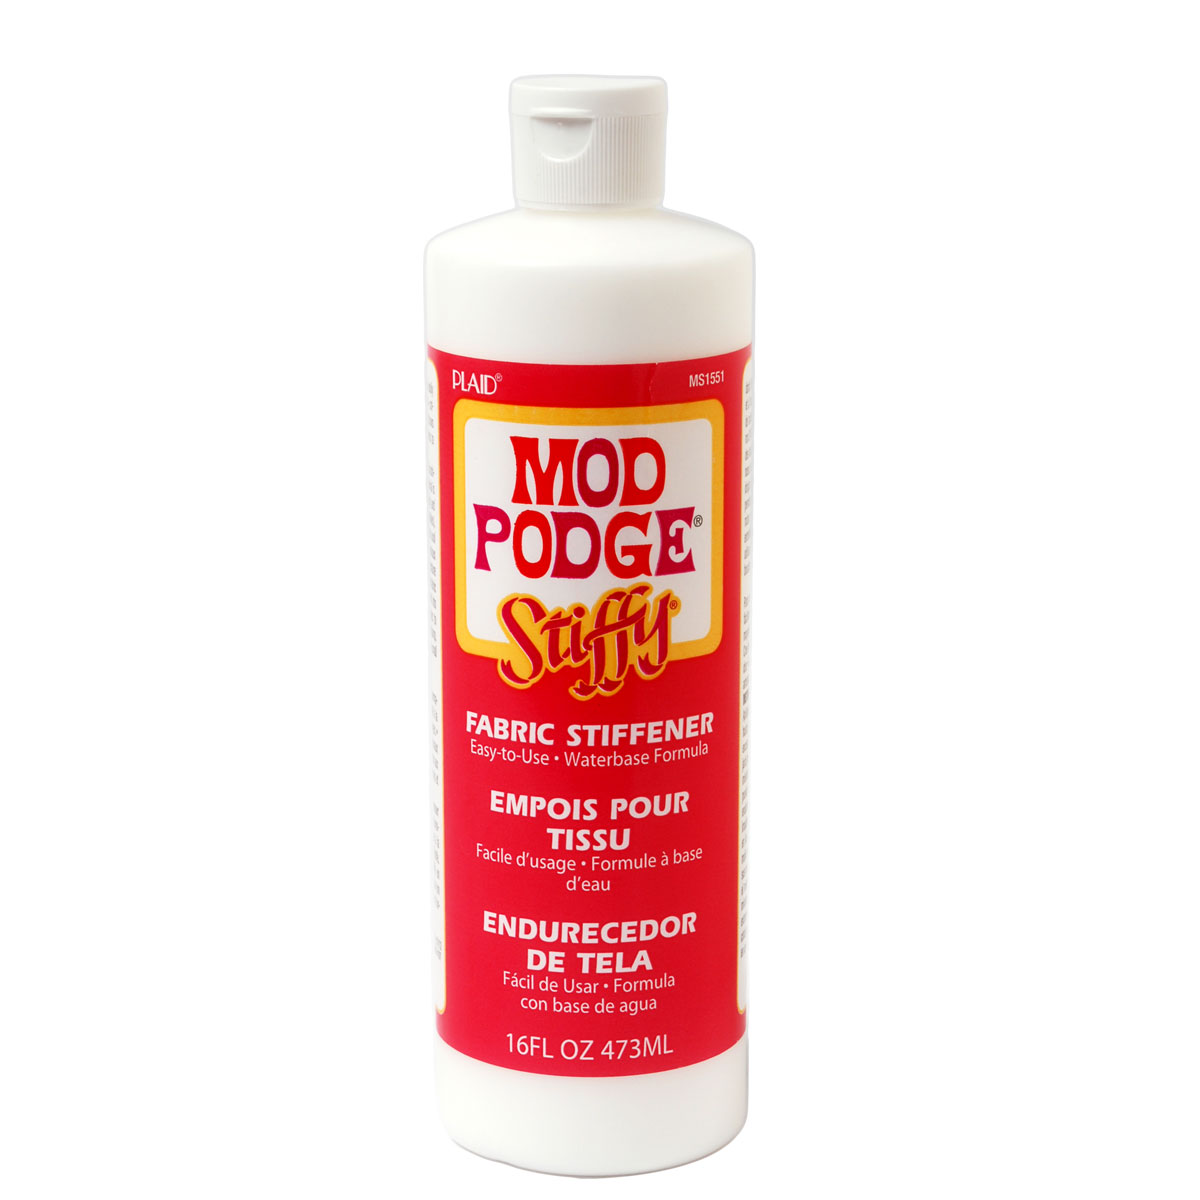 Mod Podge ® Stiffy - 16 oz. - MS1551